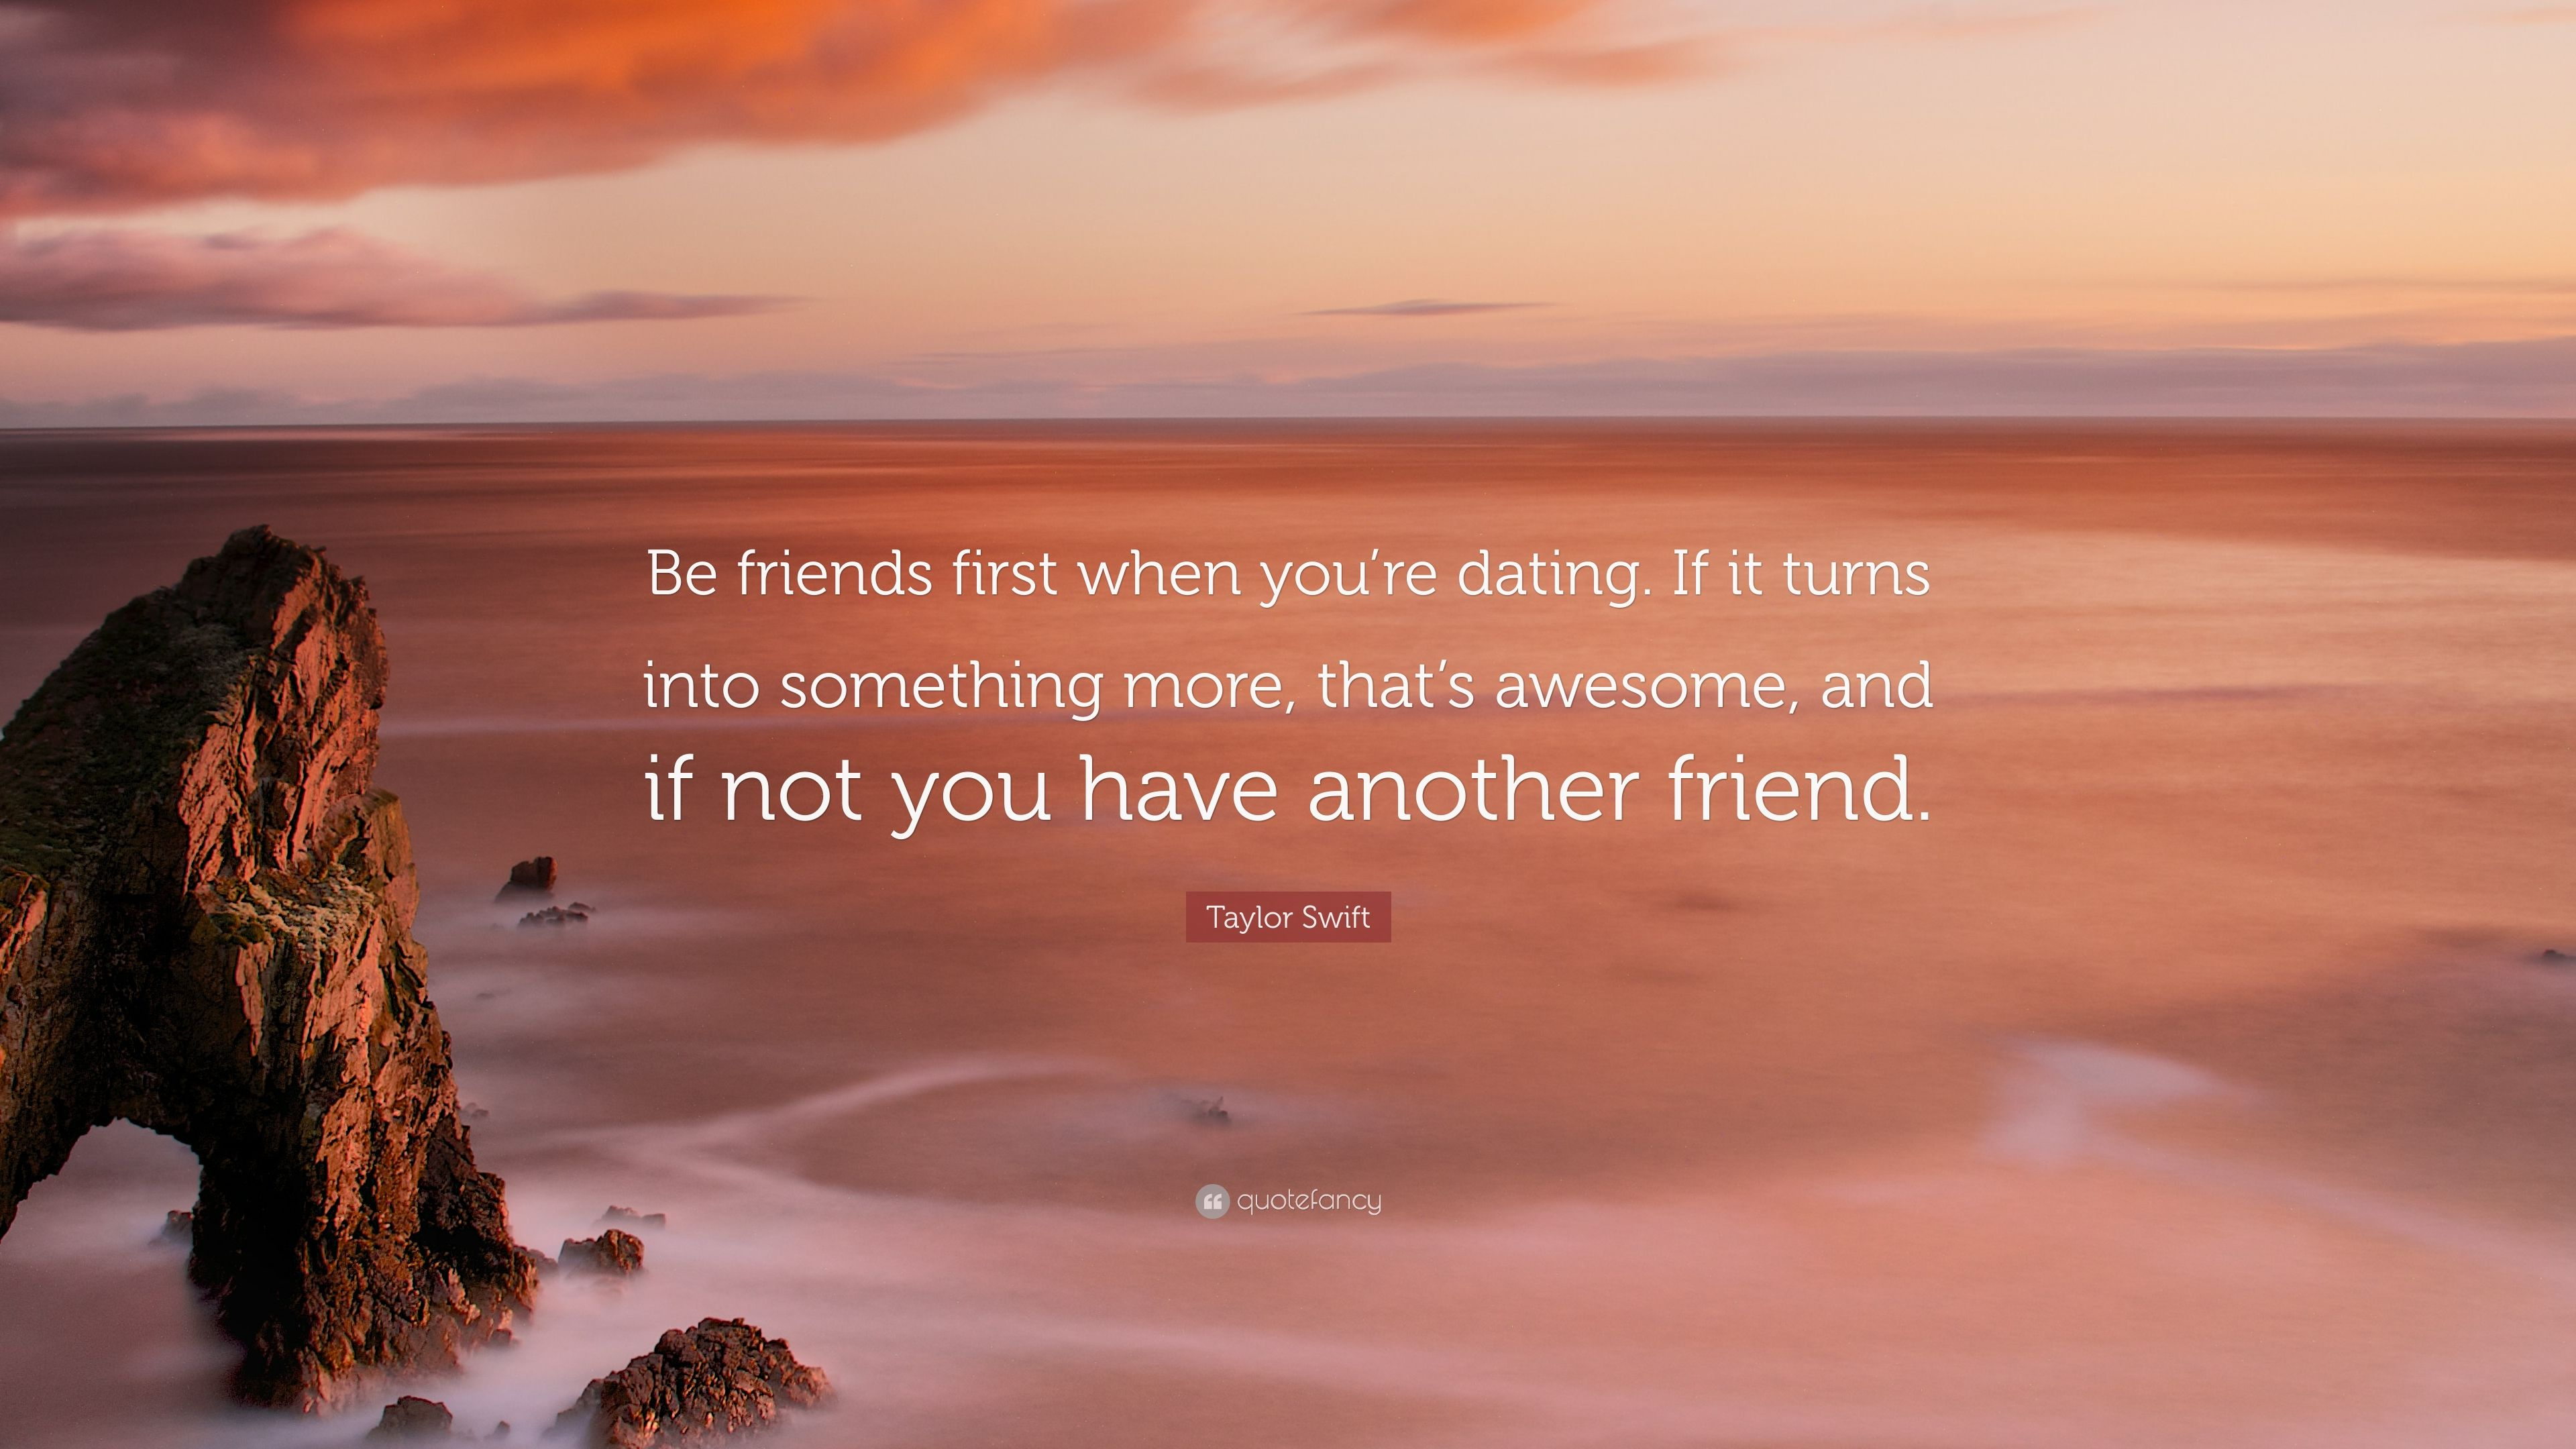 Dating as friends first